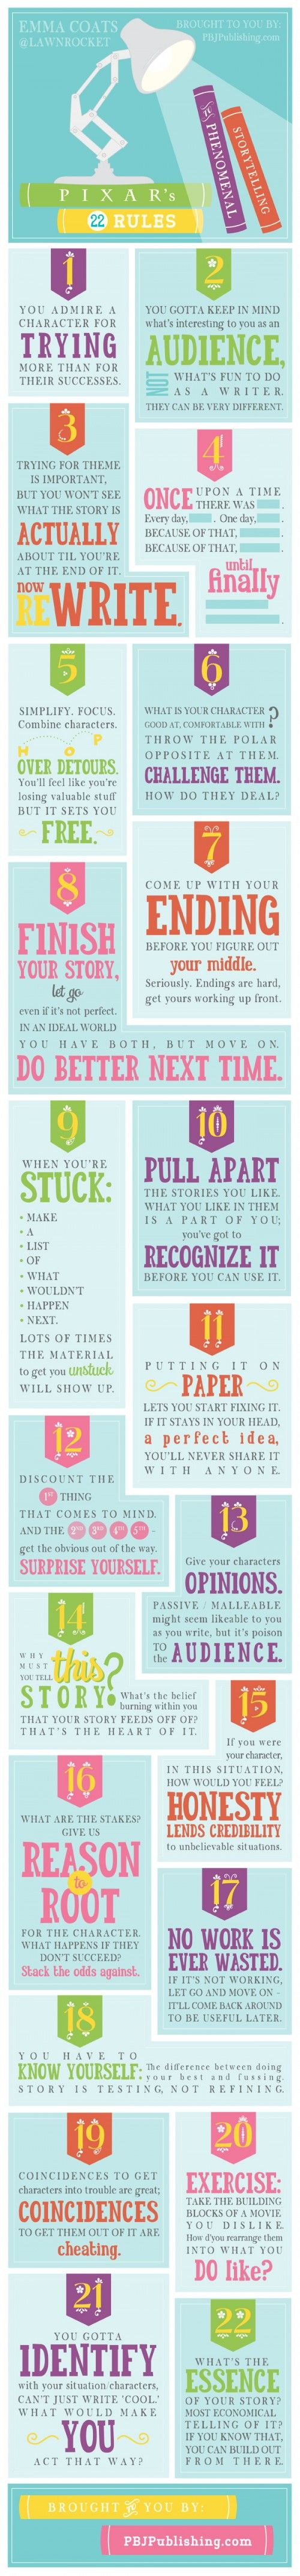 Pixar's 22 Rules to Phenomenal Storytelling. Great advice